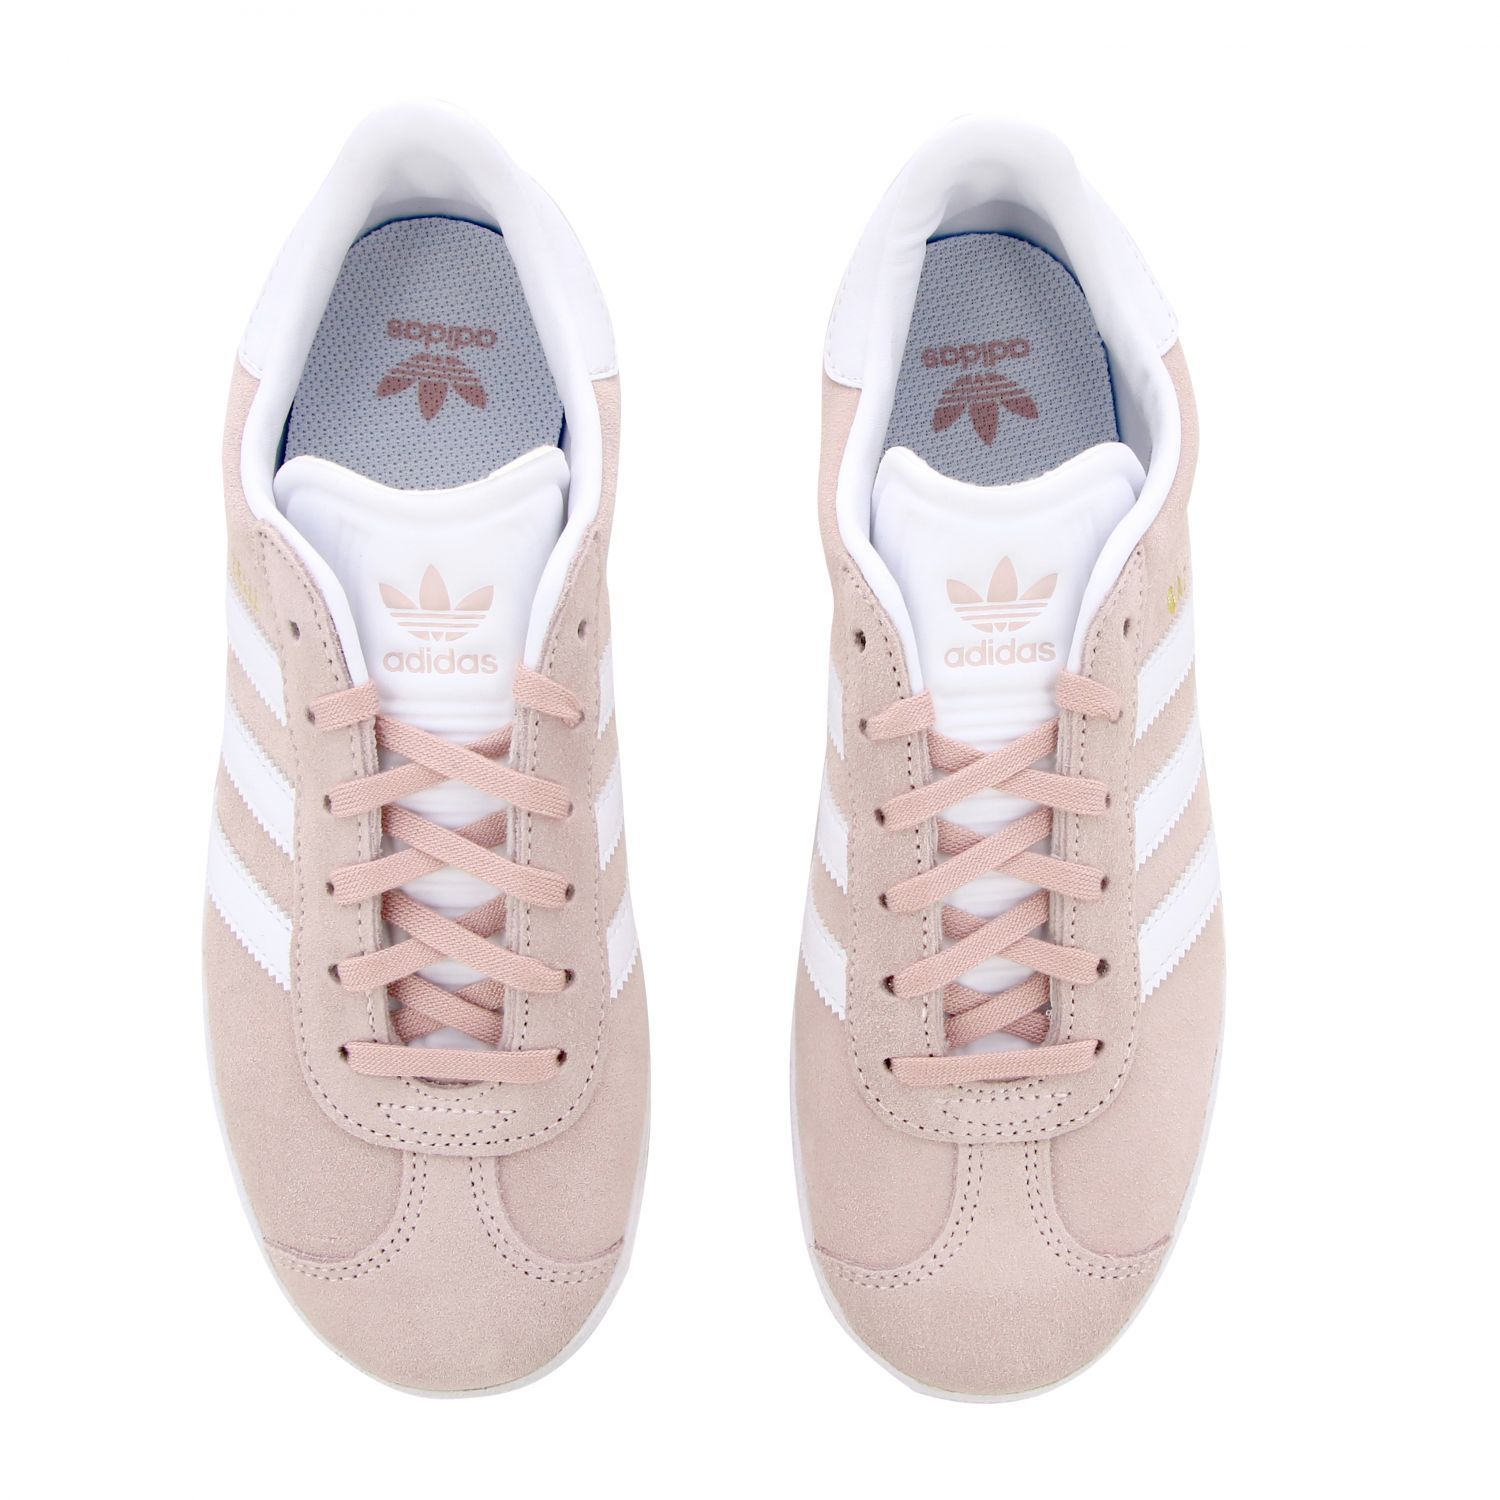 Shoes Adidas Originals: Gazelle J Adidas Originals sneakers in synthetic suede and leather pink 3